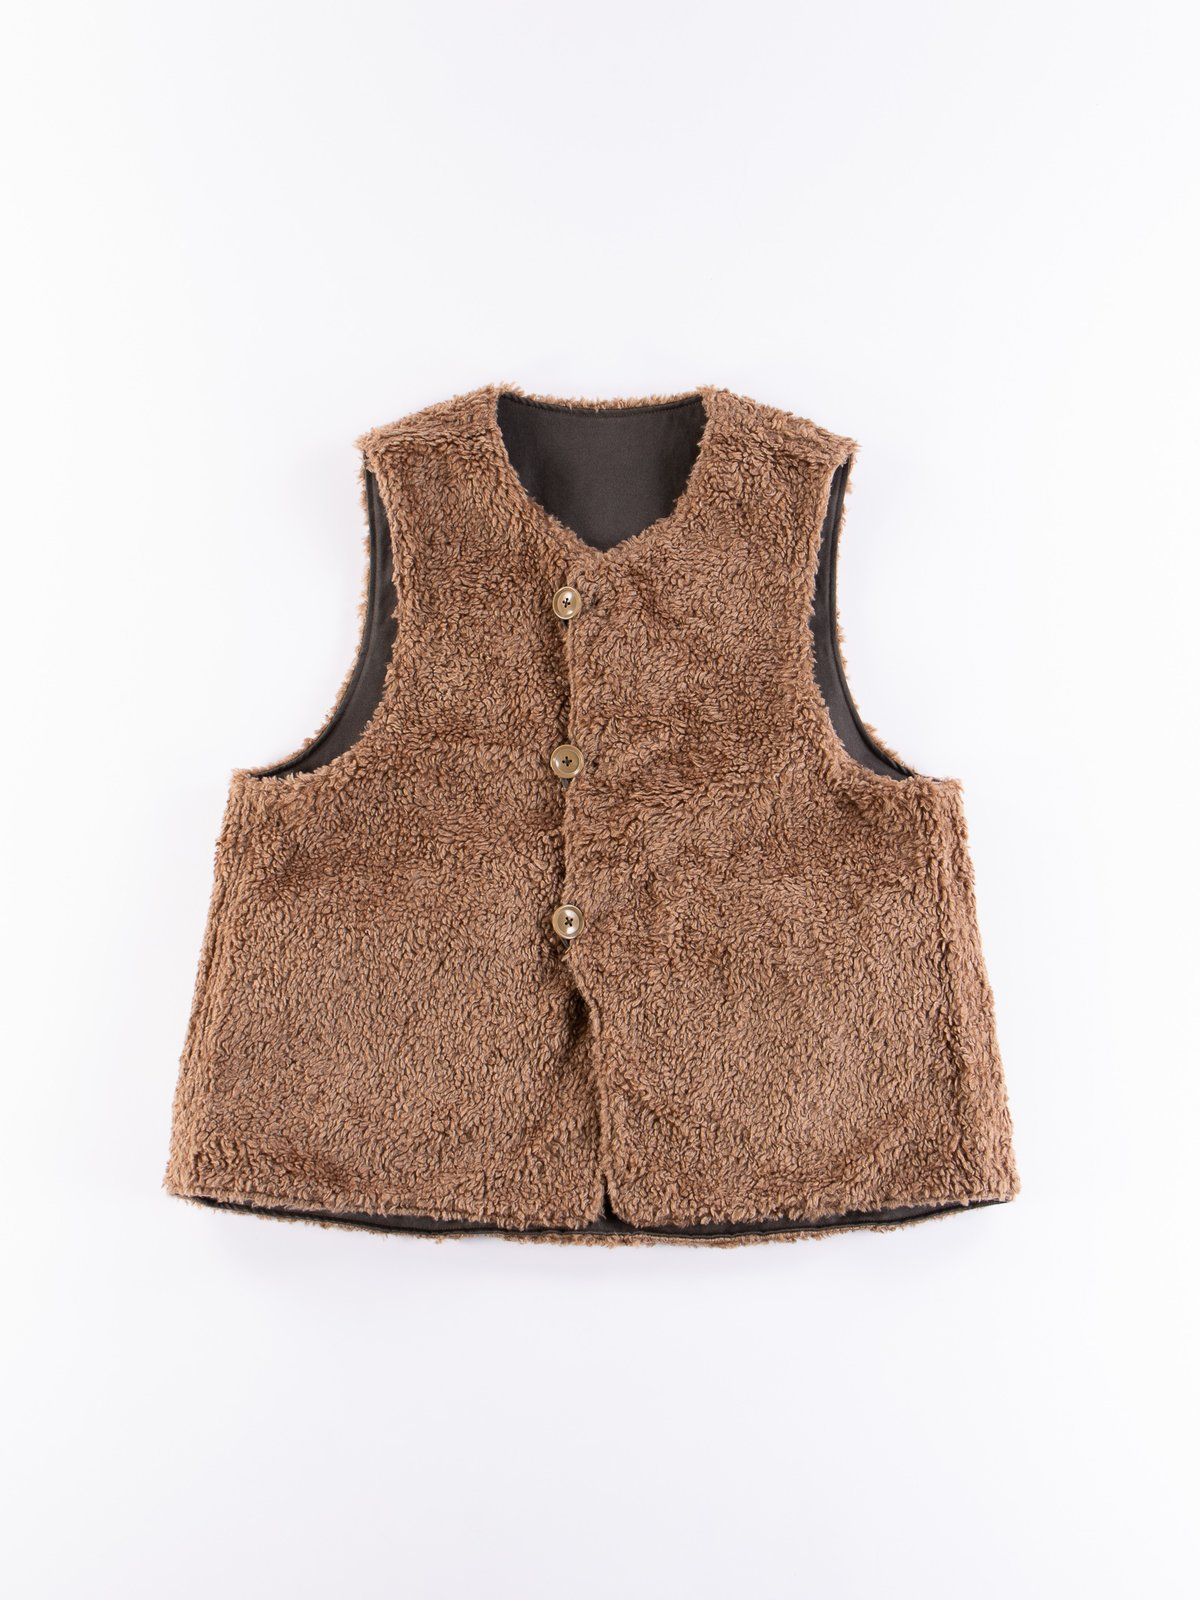 Dark Olive Coated Twill Over Vest - Image 6